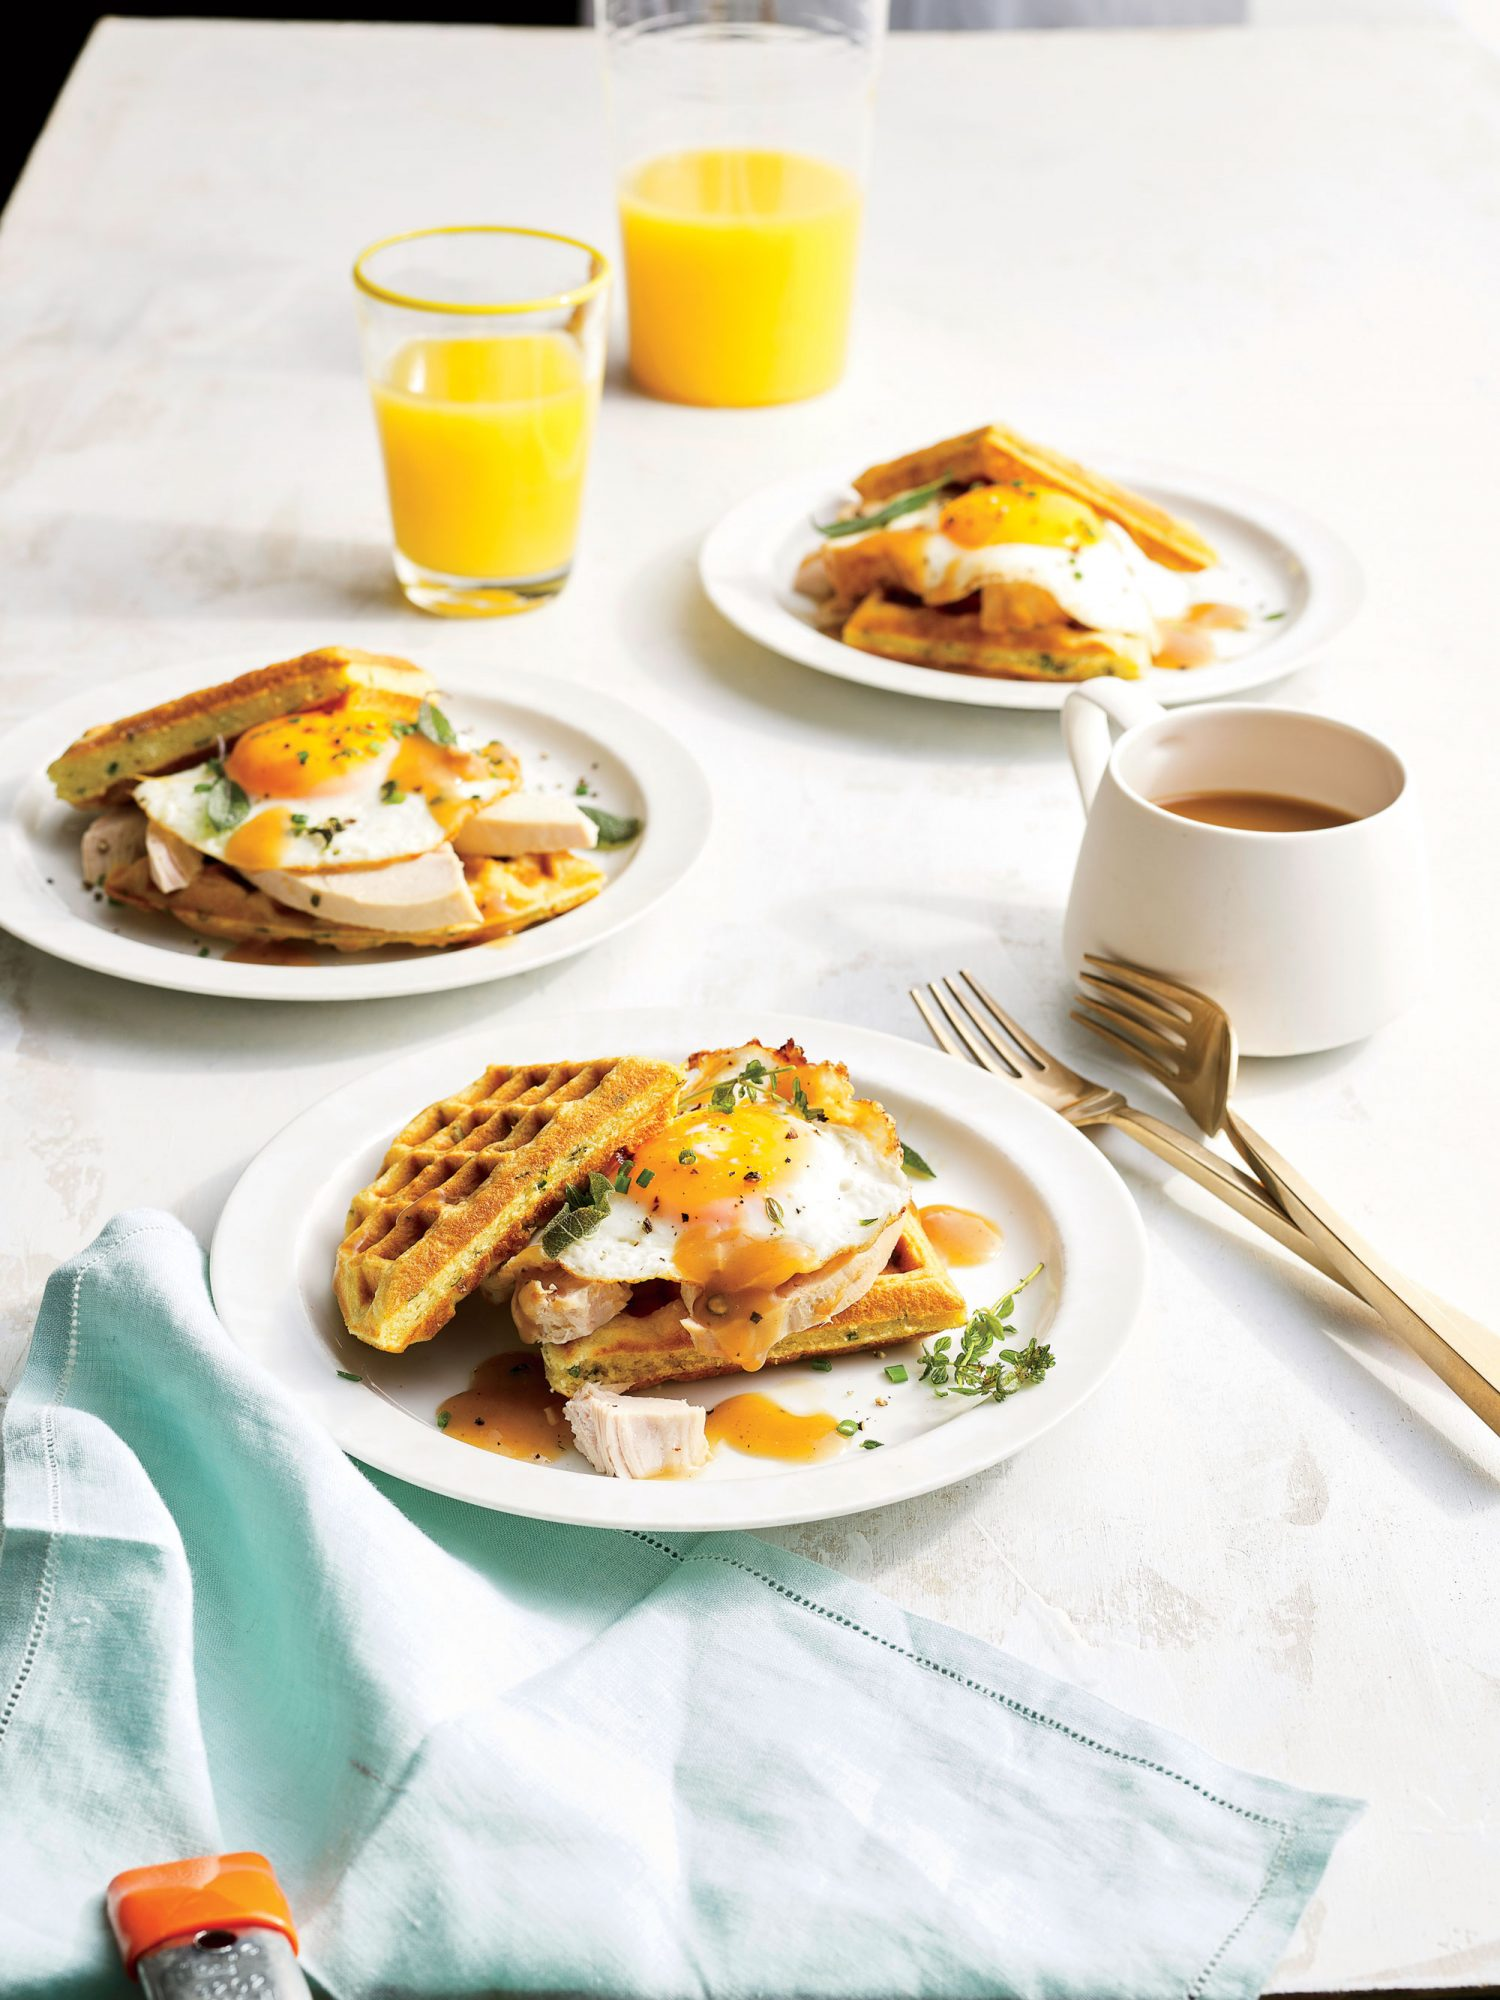 Turkey-and-Gravy Waffle Sandwich with Sunny-Side-Up Egg